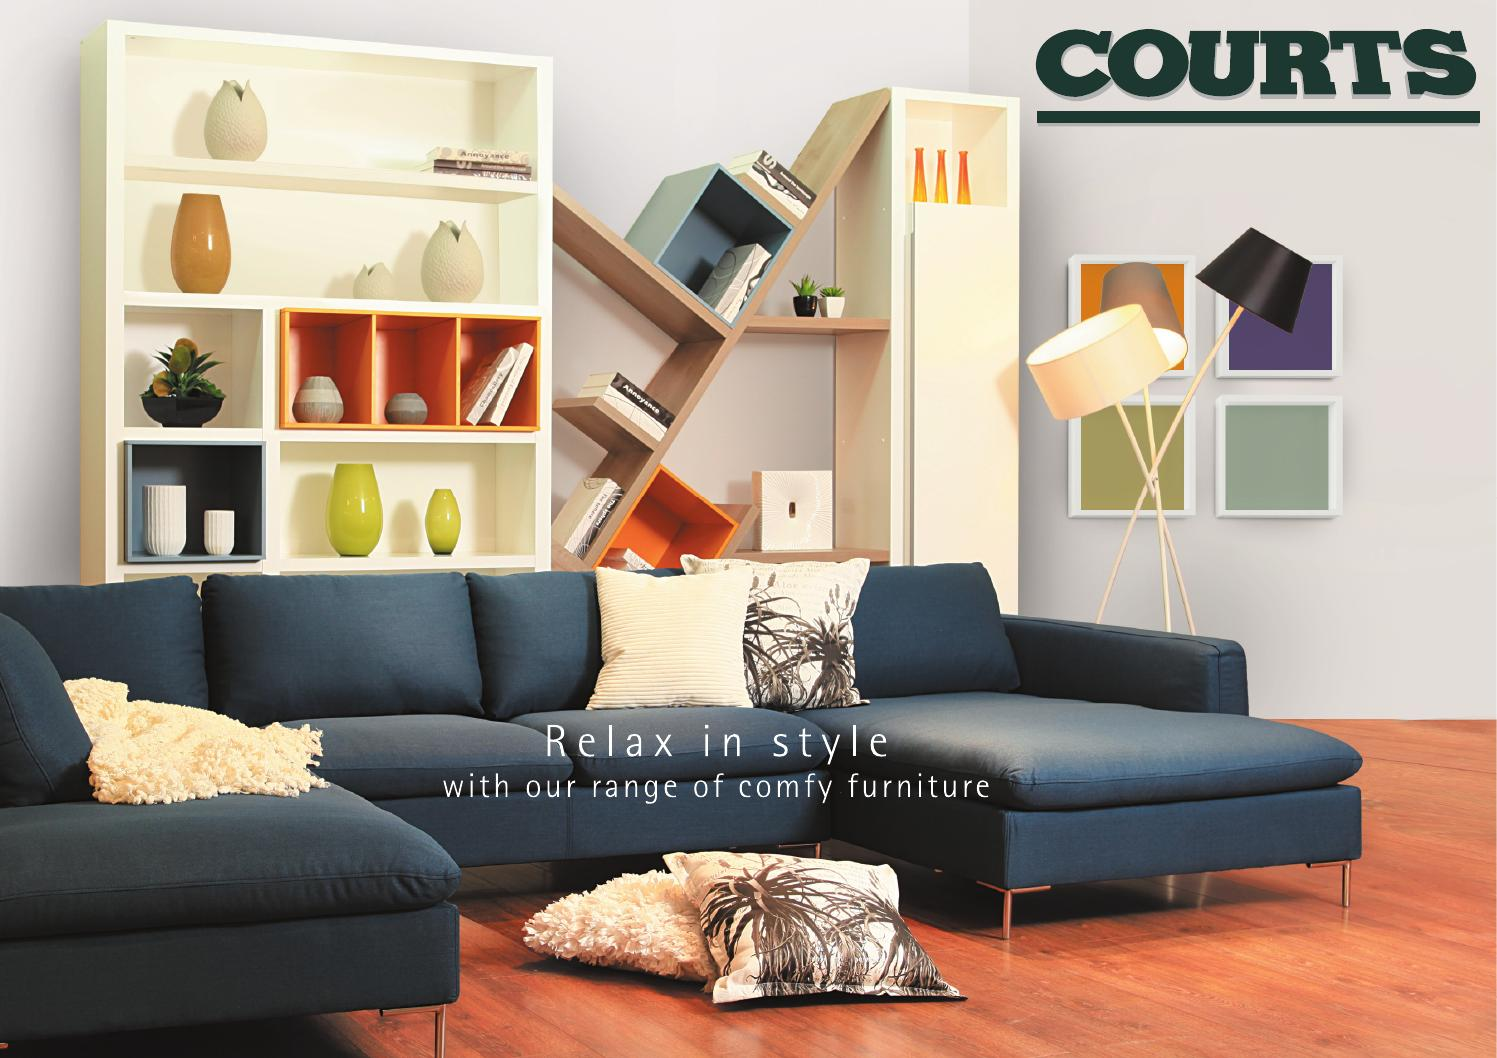 Courts mauritius furniture catalogue 2015 by dora can issuu for Furniture catalogue